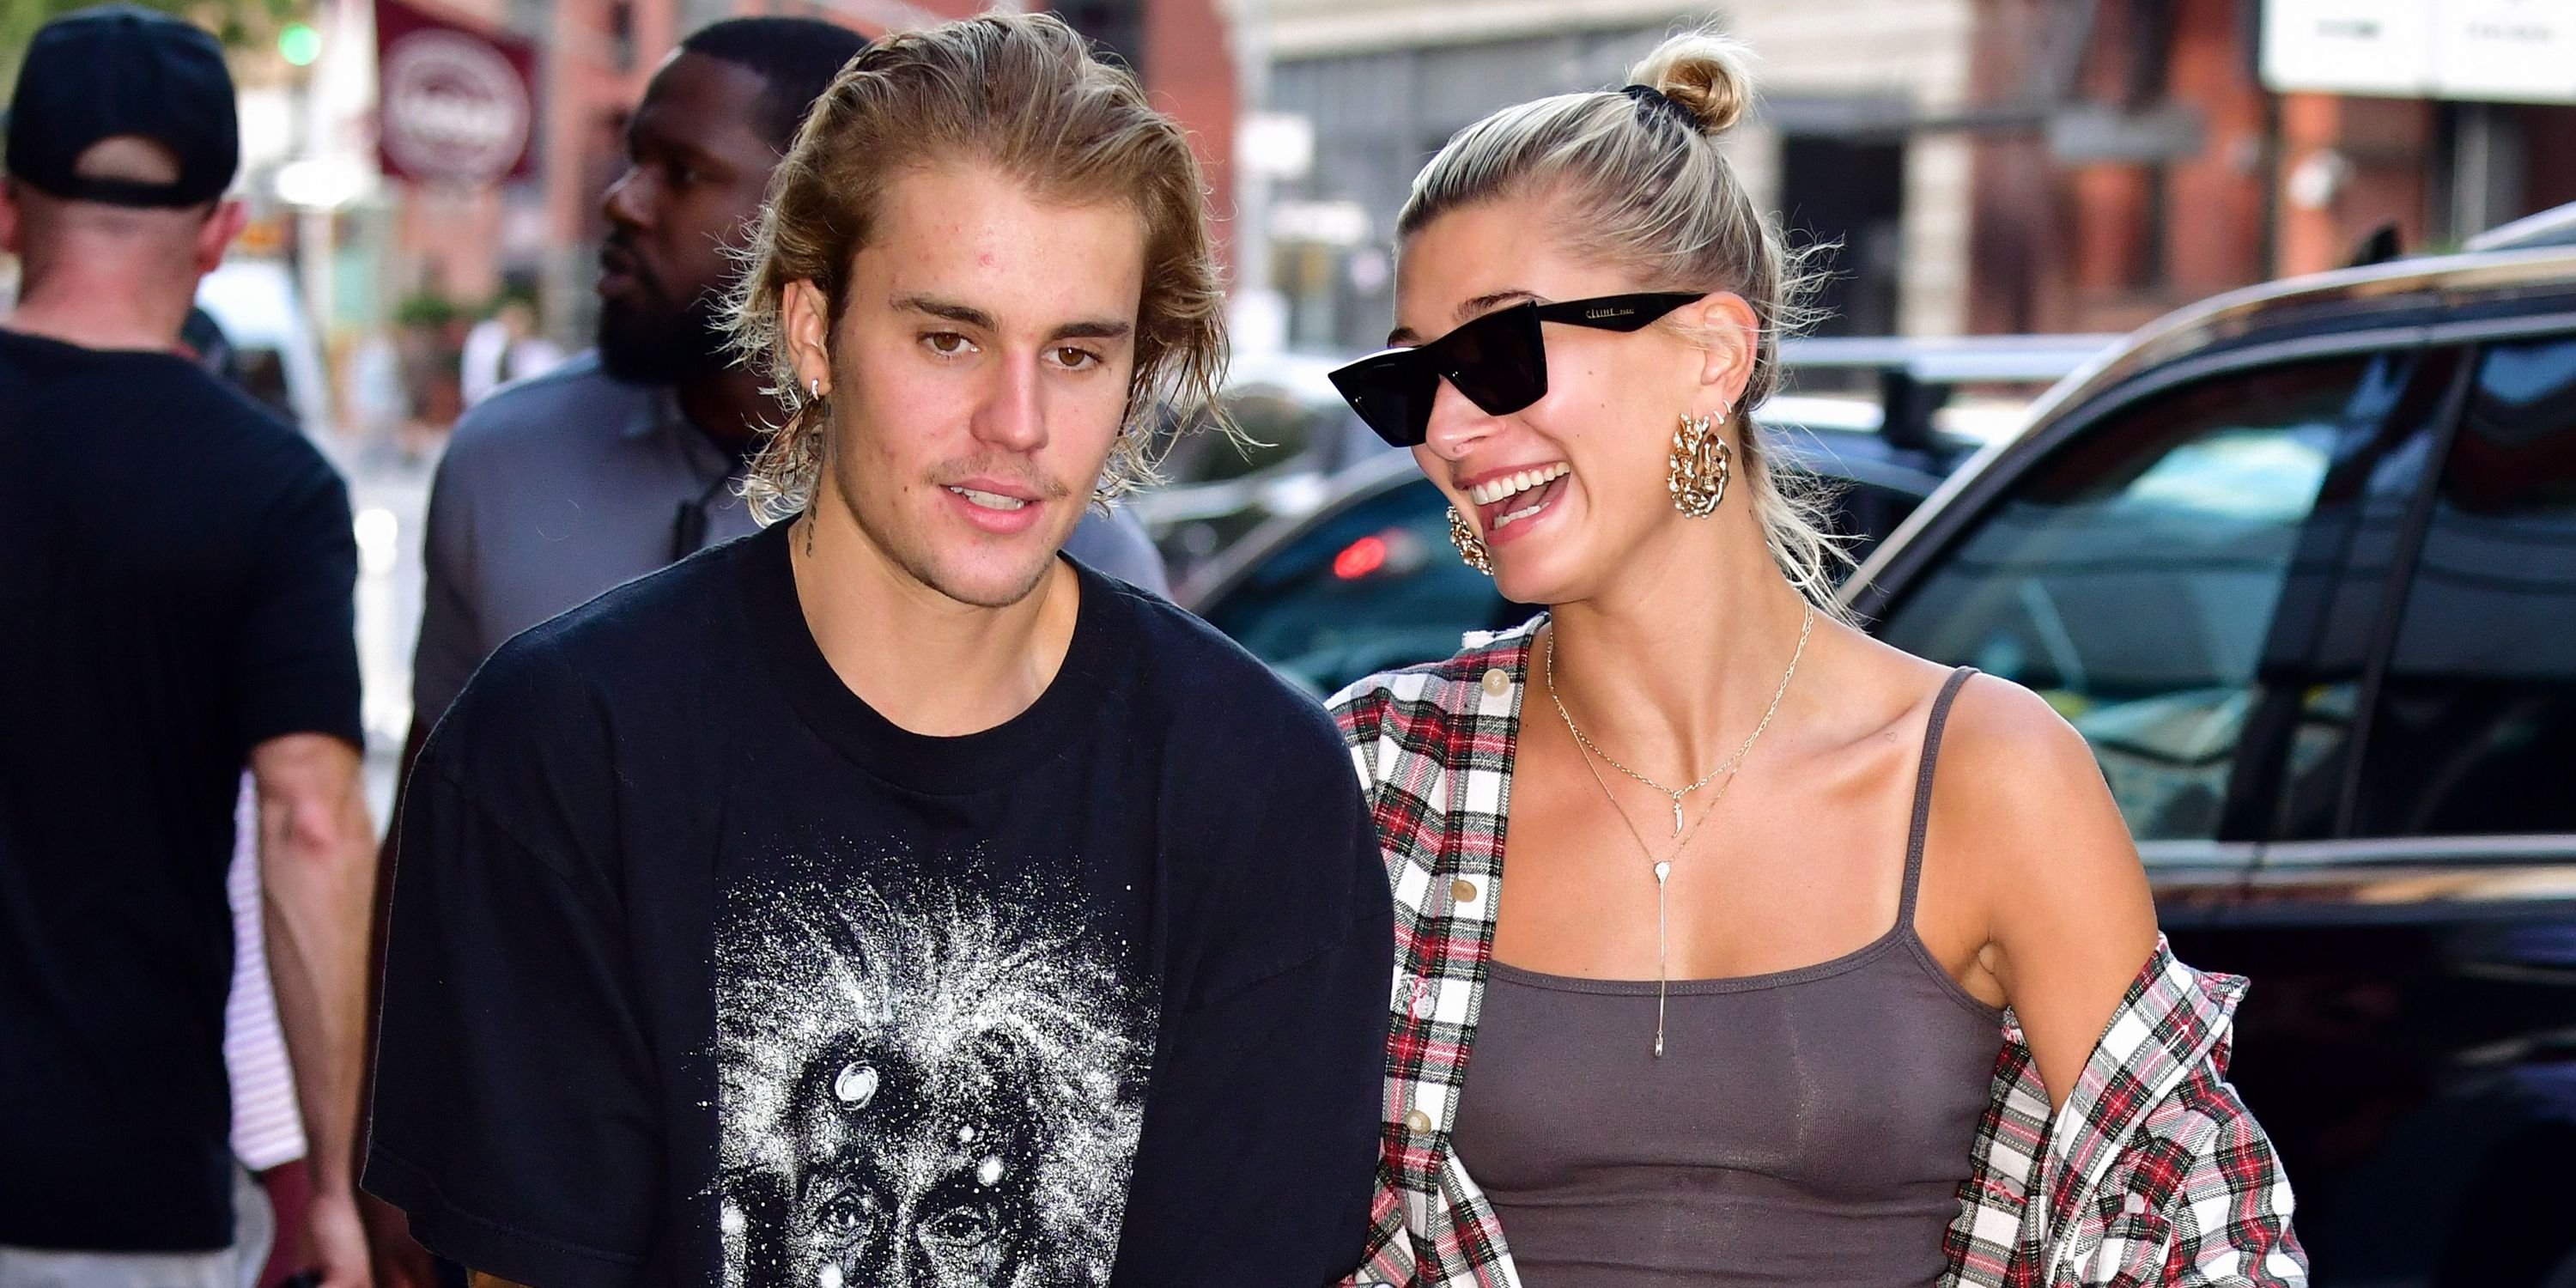 Who is dating justin bieber 2019 american